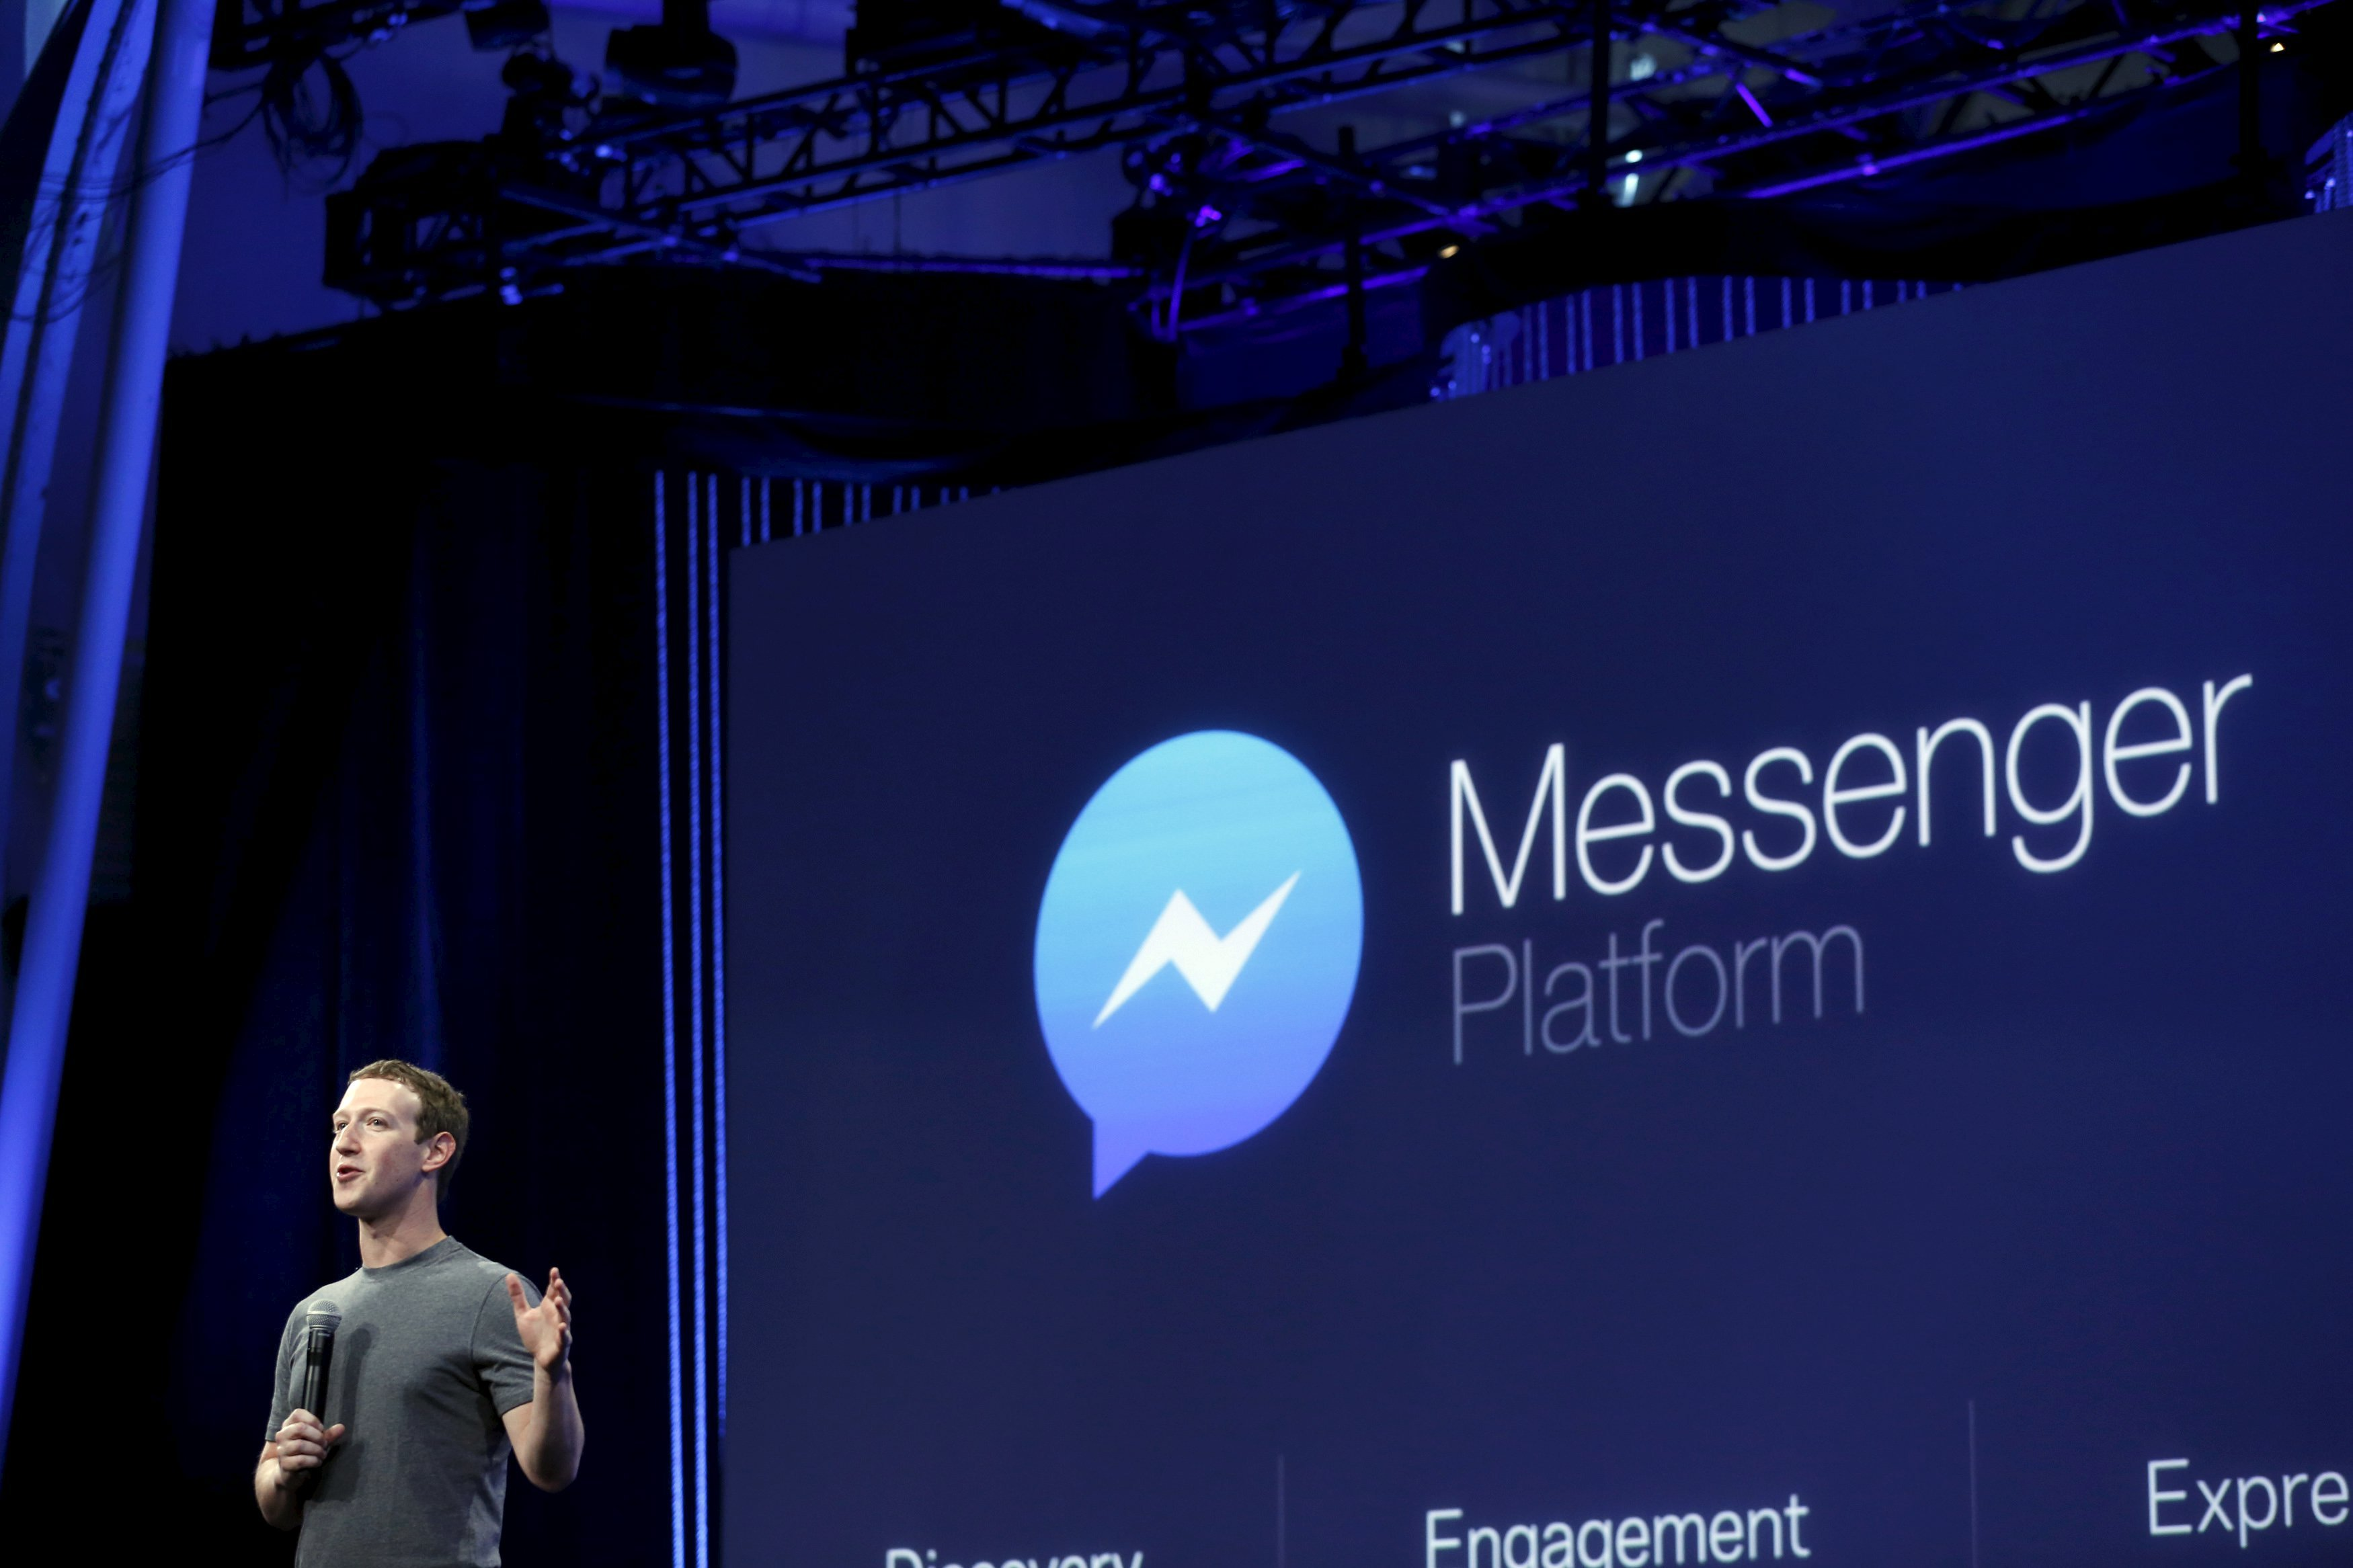 Facebook CEO Mark Zuckerberg speaks during his keynote address at Facebook F8 in San Francisco on March 25, 2015.